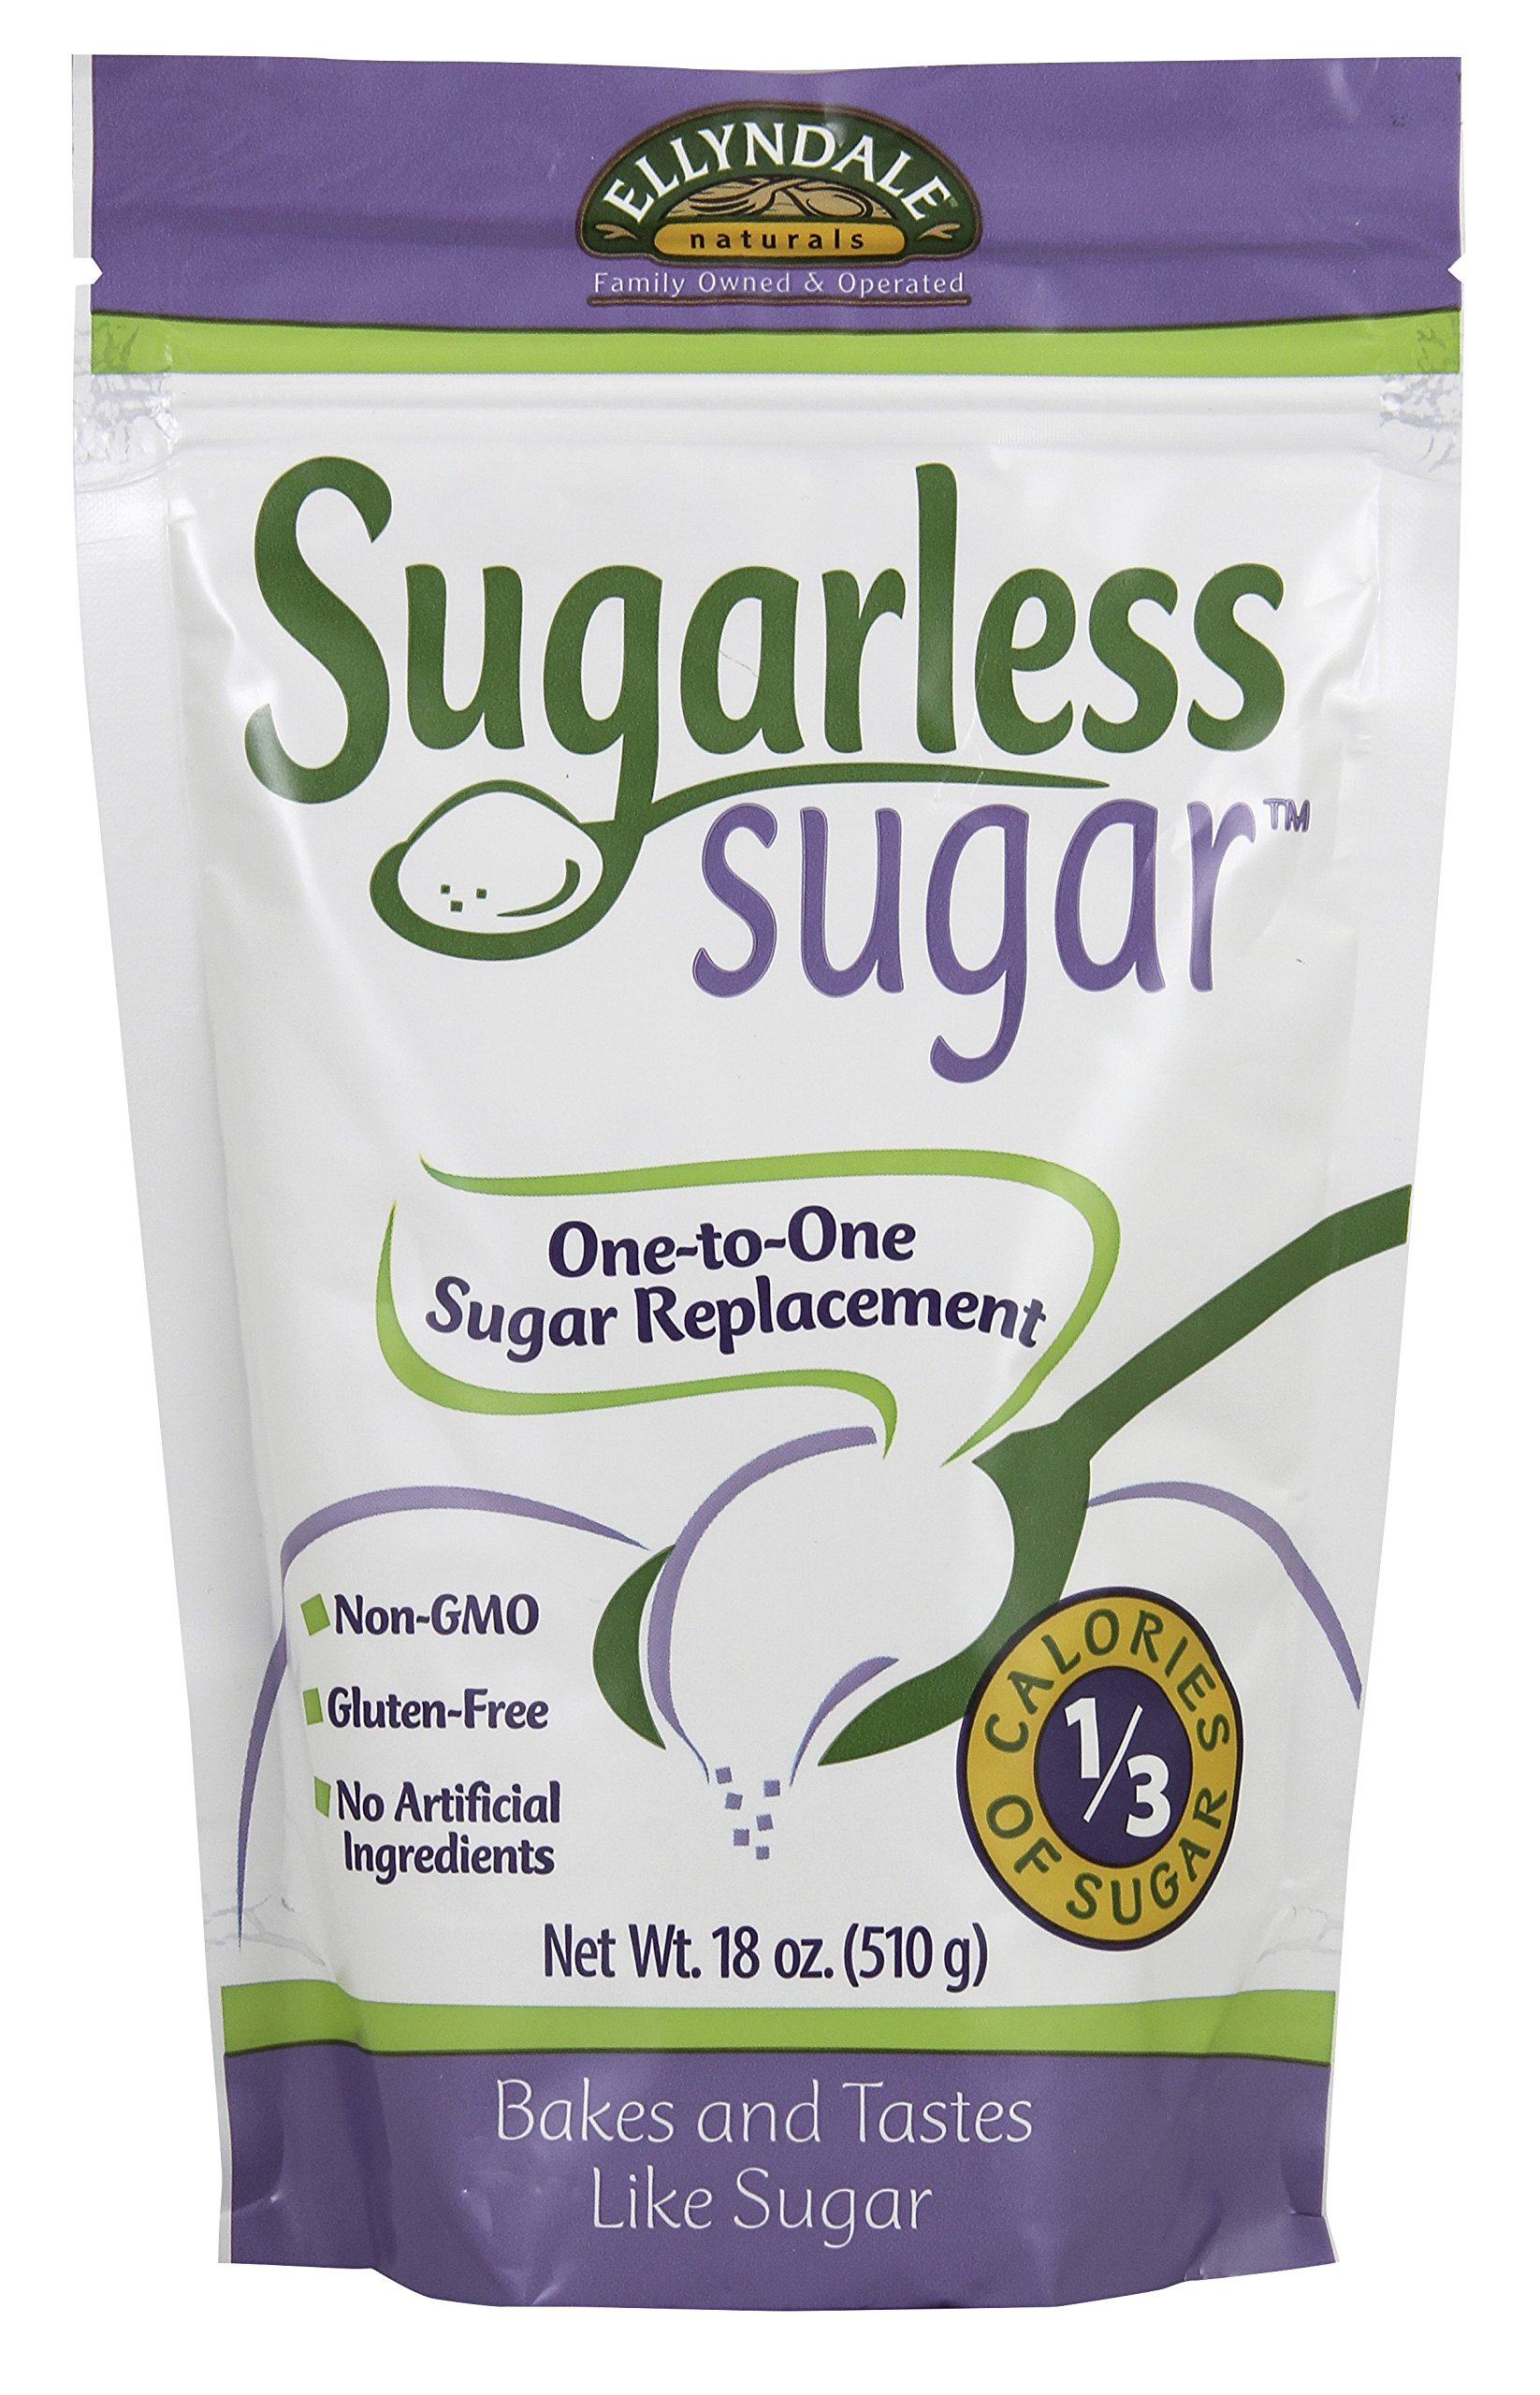 NOW Foods Ellyndale Sugarless Sugar, 1.15 Pound (Pack of 12)